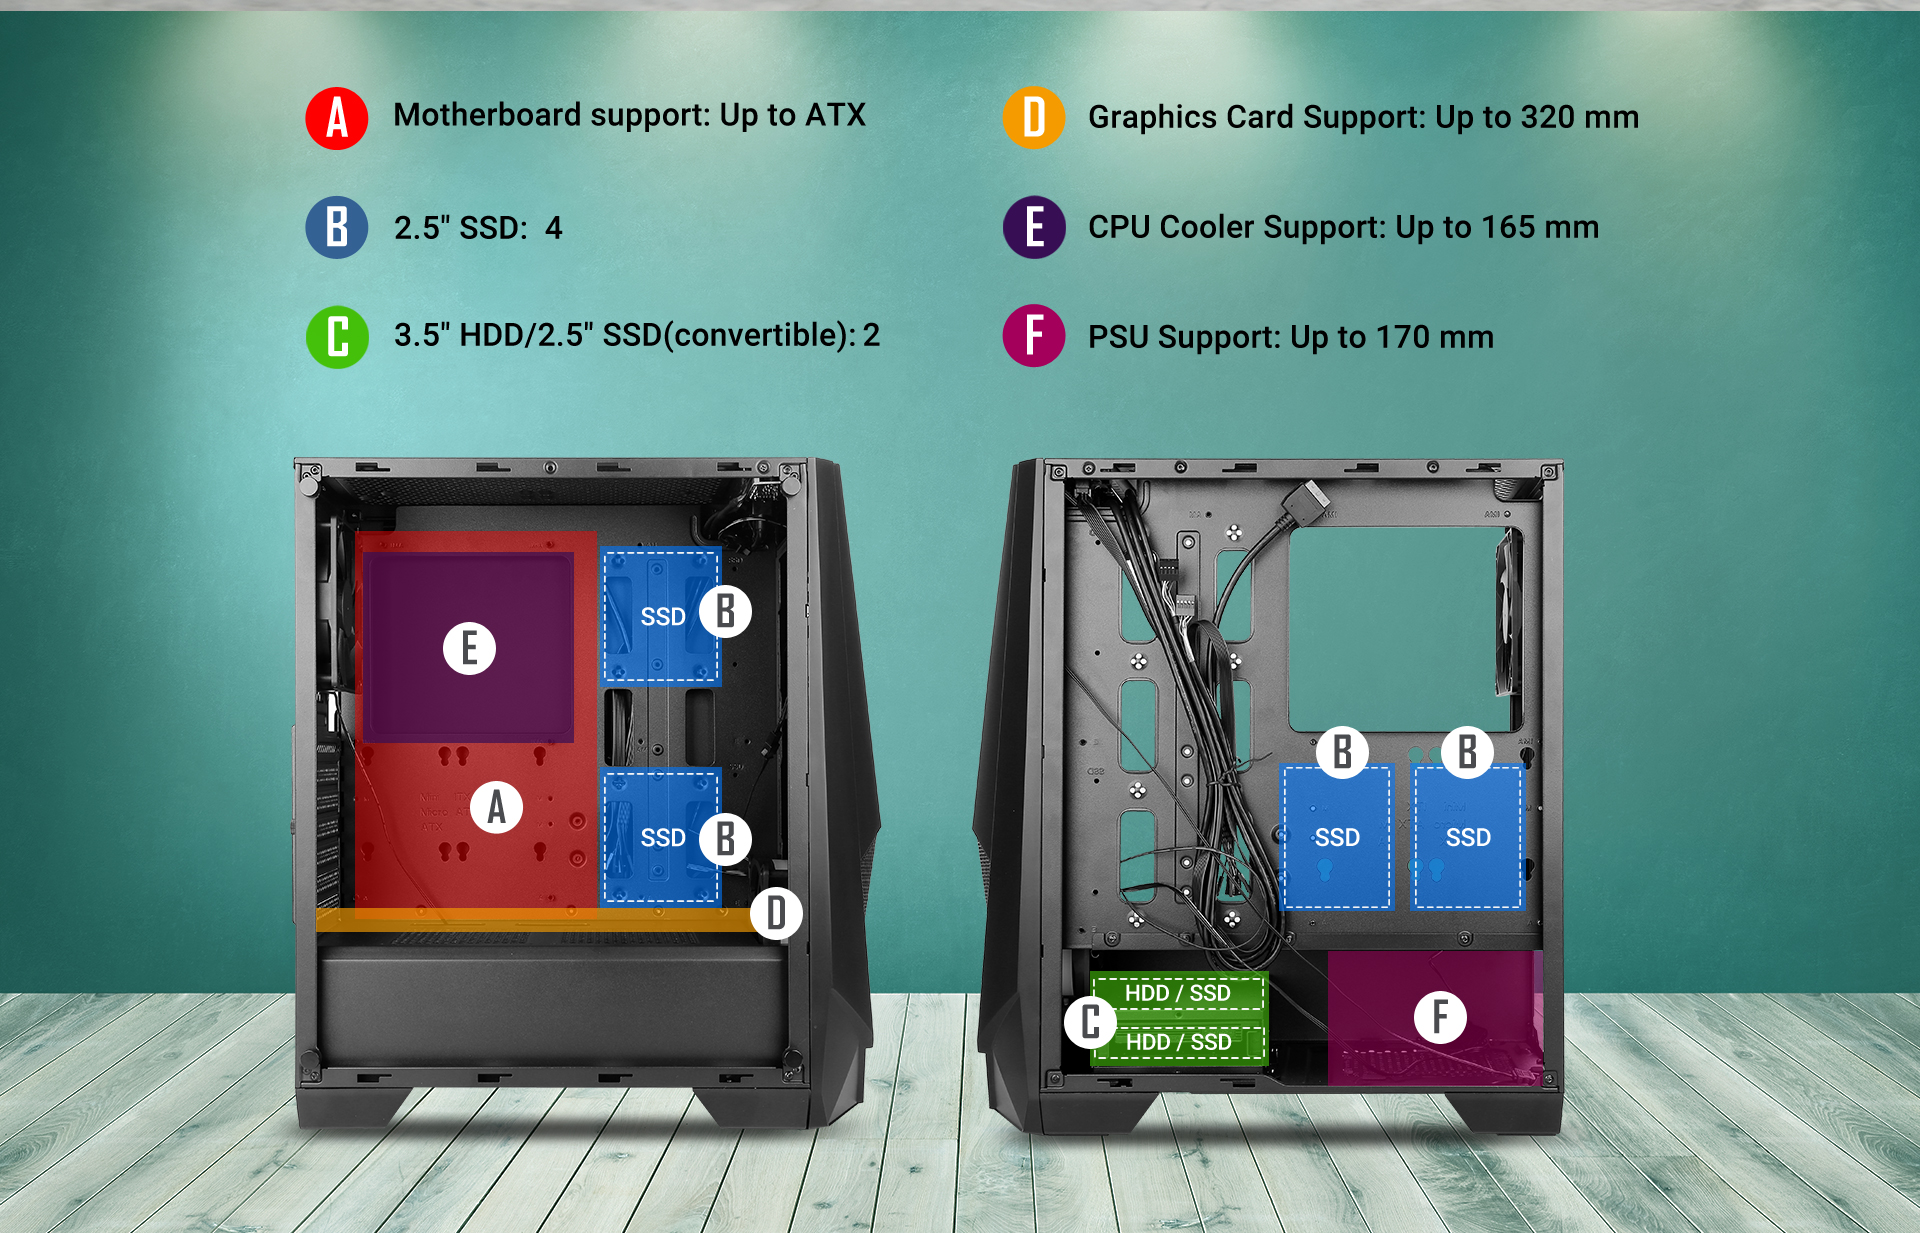 NX Series NX310 Mid Tower ATX Gaming Case supports the SSD specifications and installation location